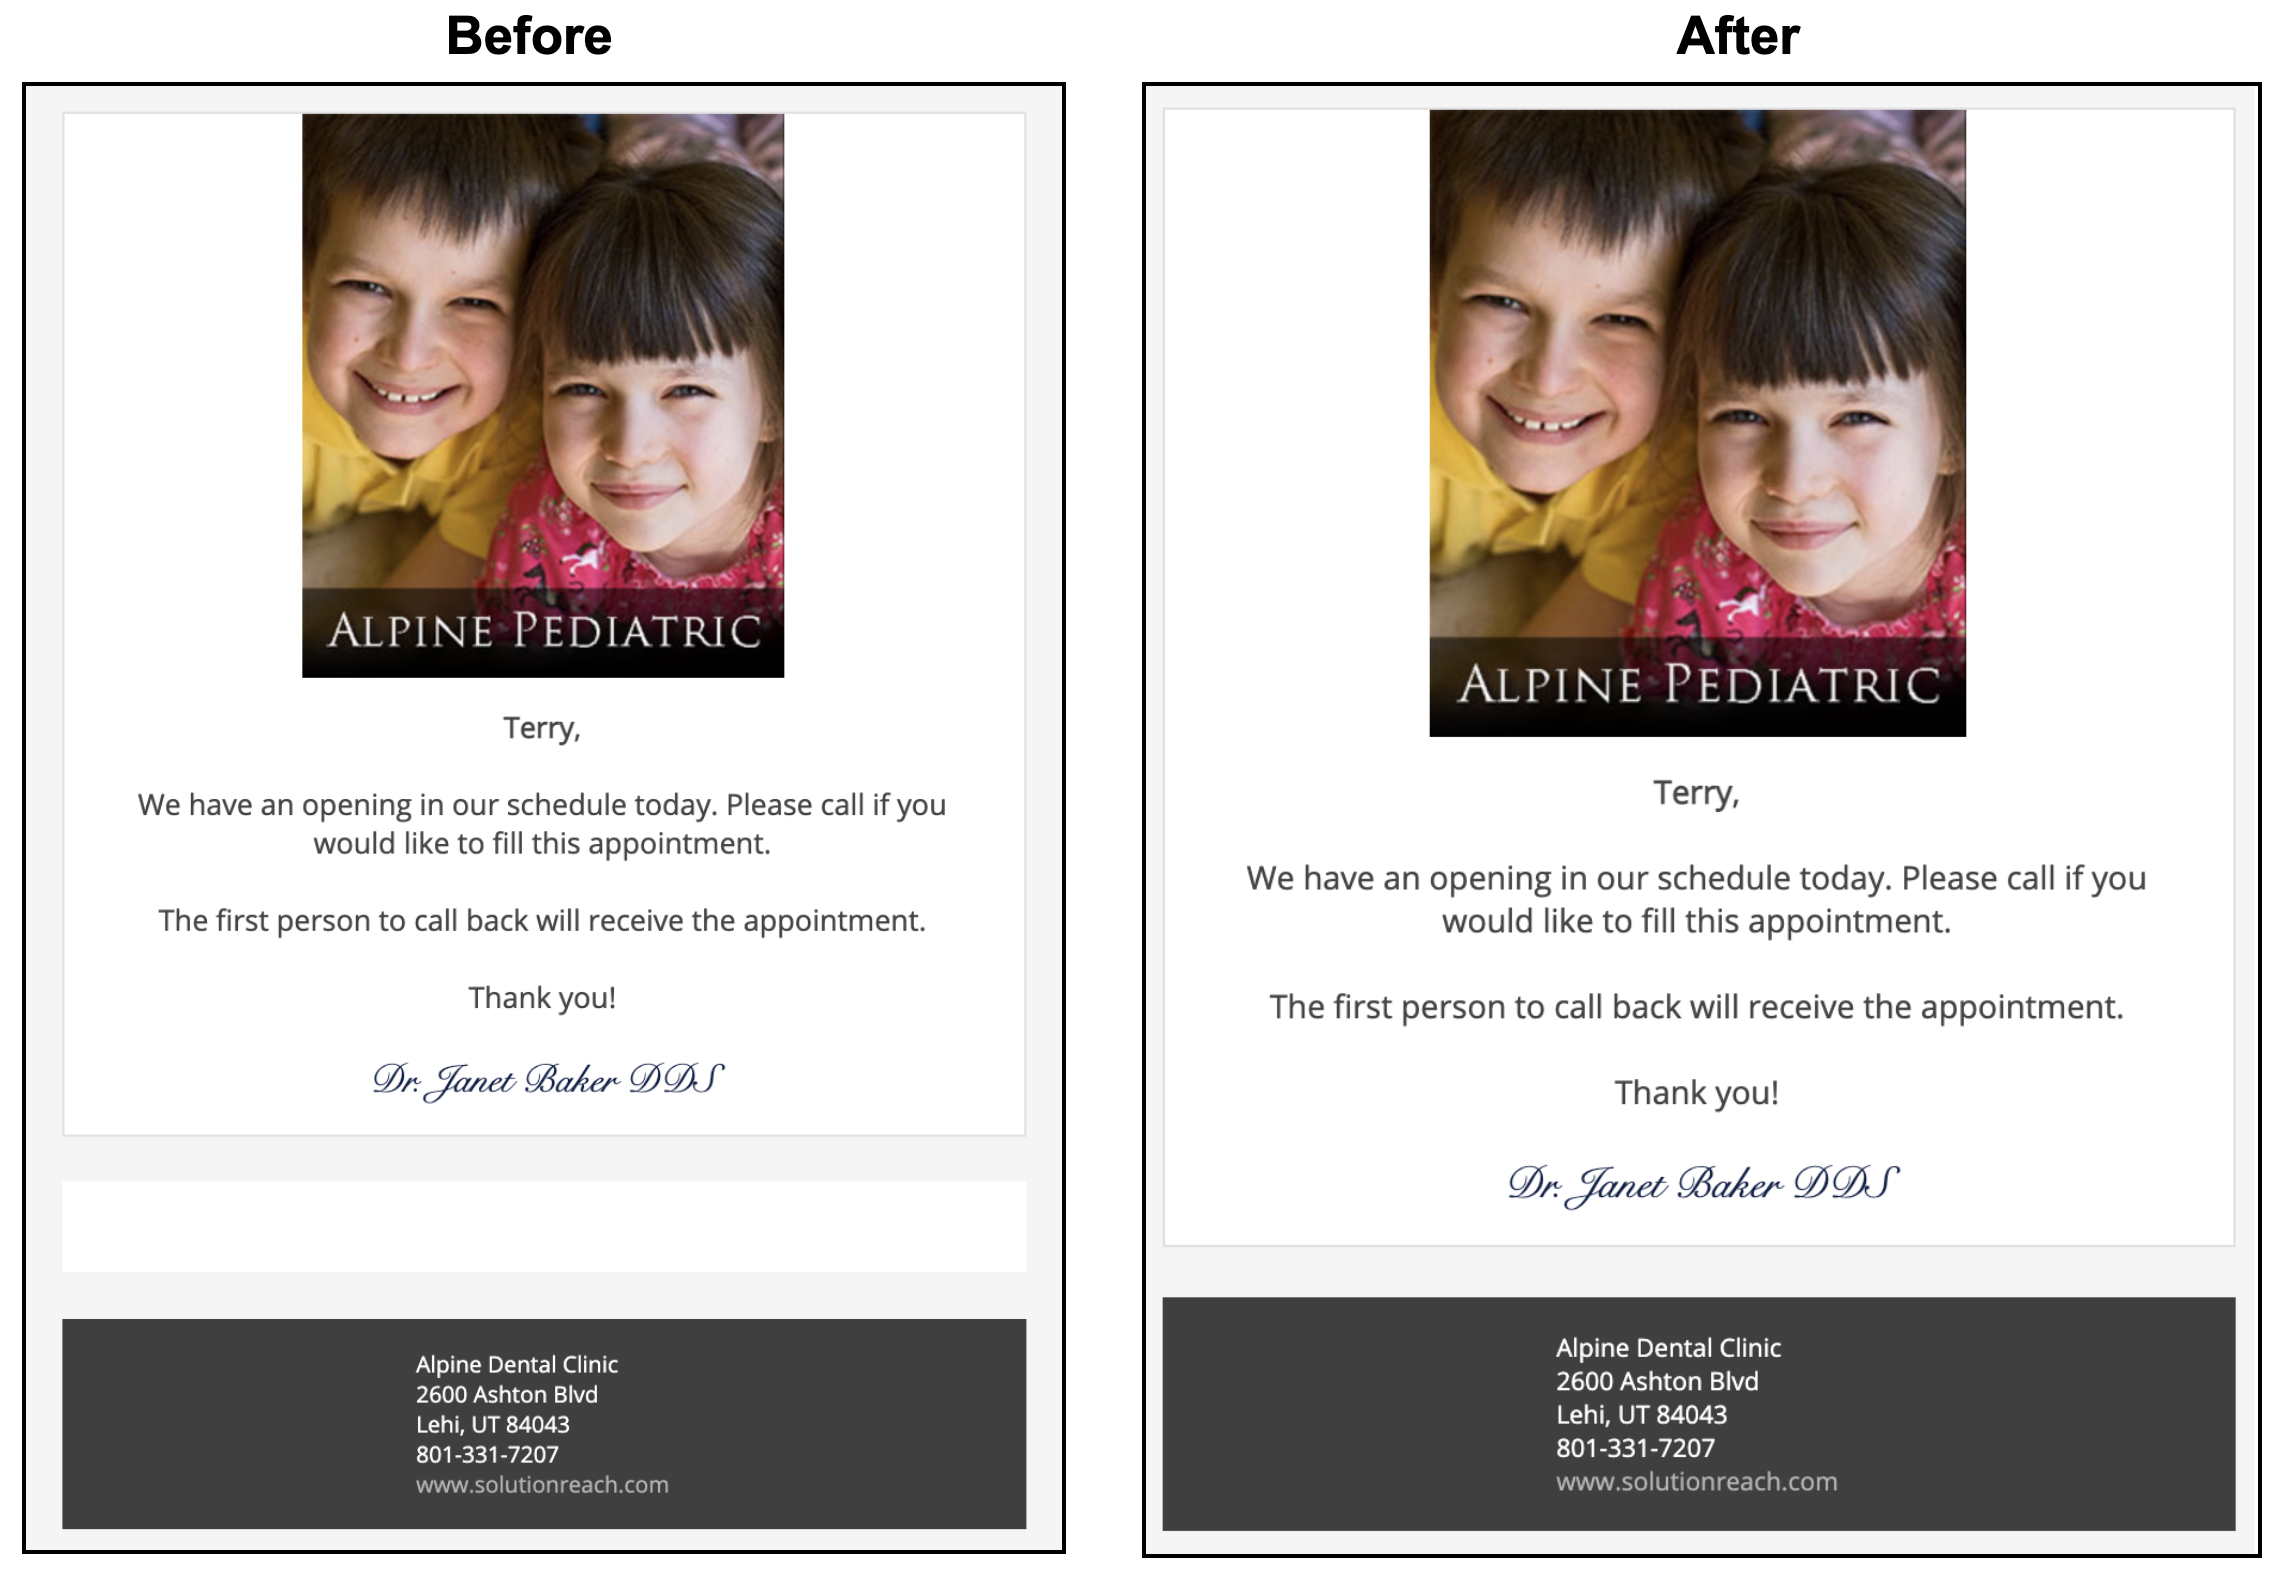 Before and After images of group message emails showing removed white space